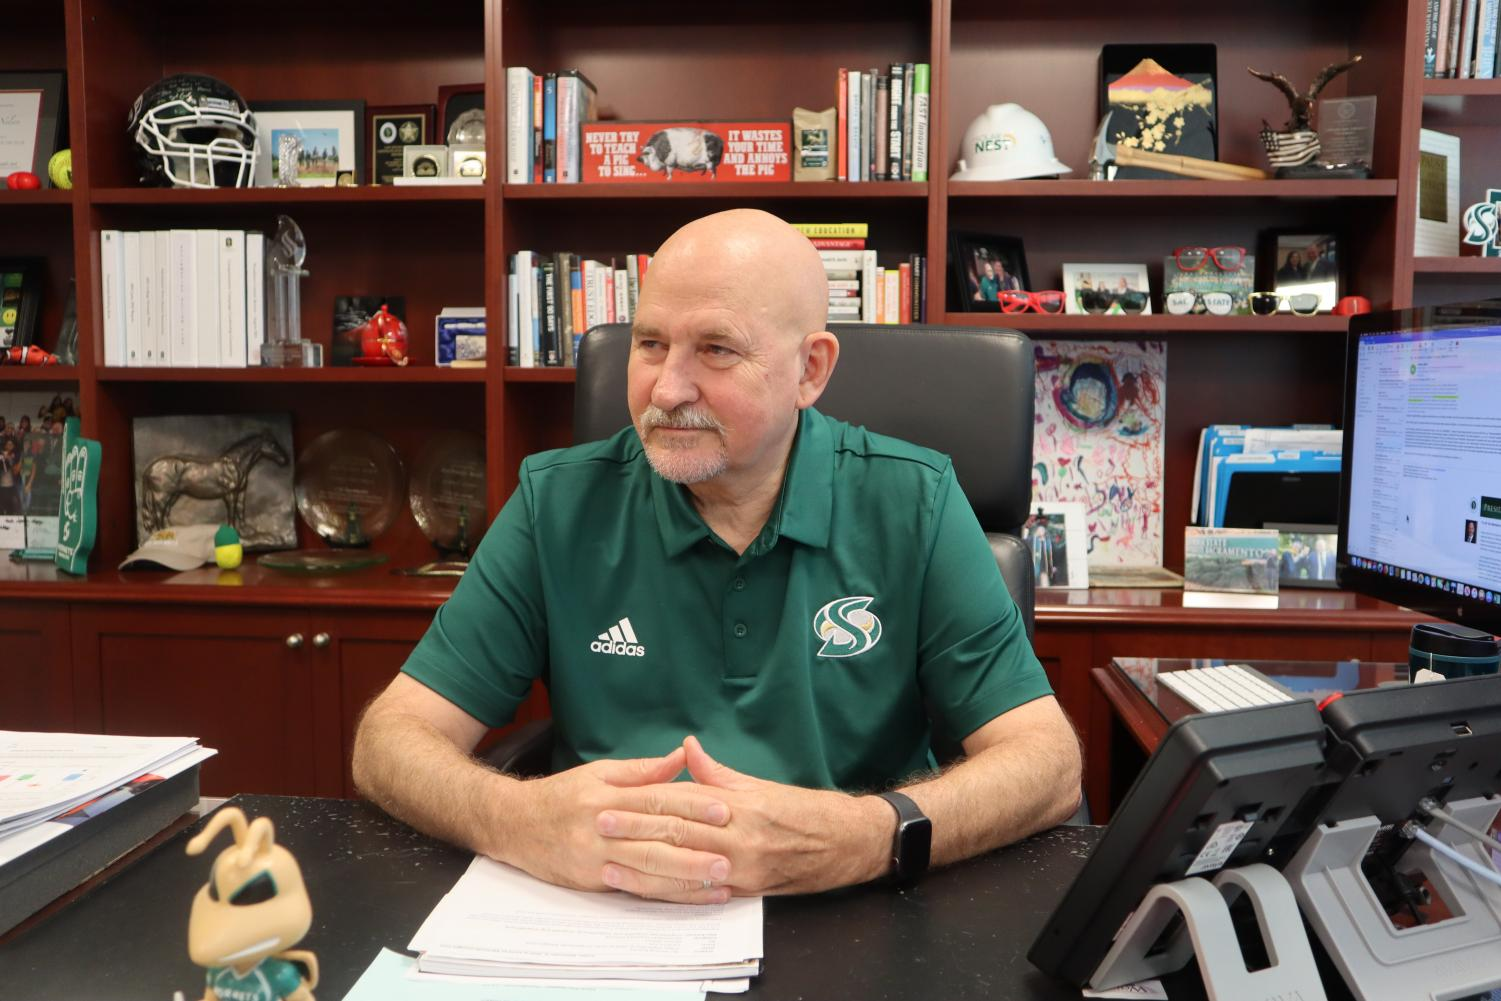 Robert Nelsen, president of Sacramento State, sits in his office in Sacramento Hall on Sept. 6. Nelsen regularly attends the university's athletic events.